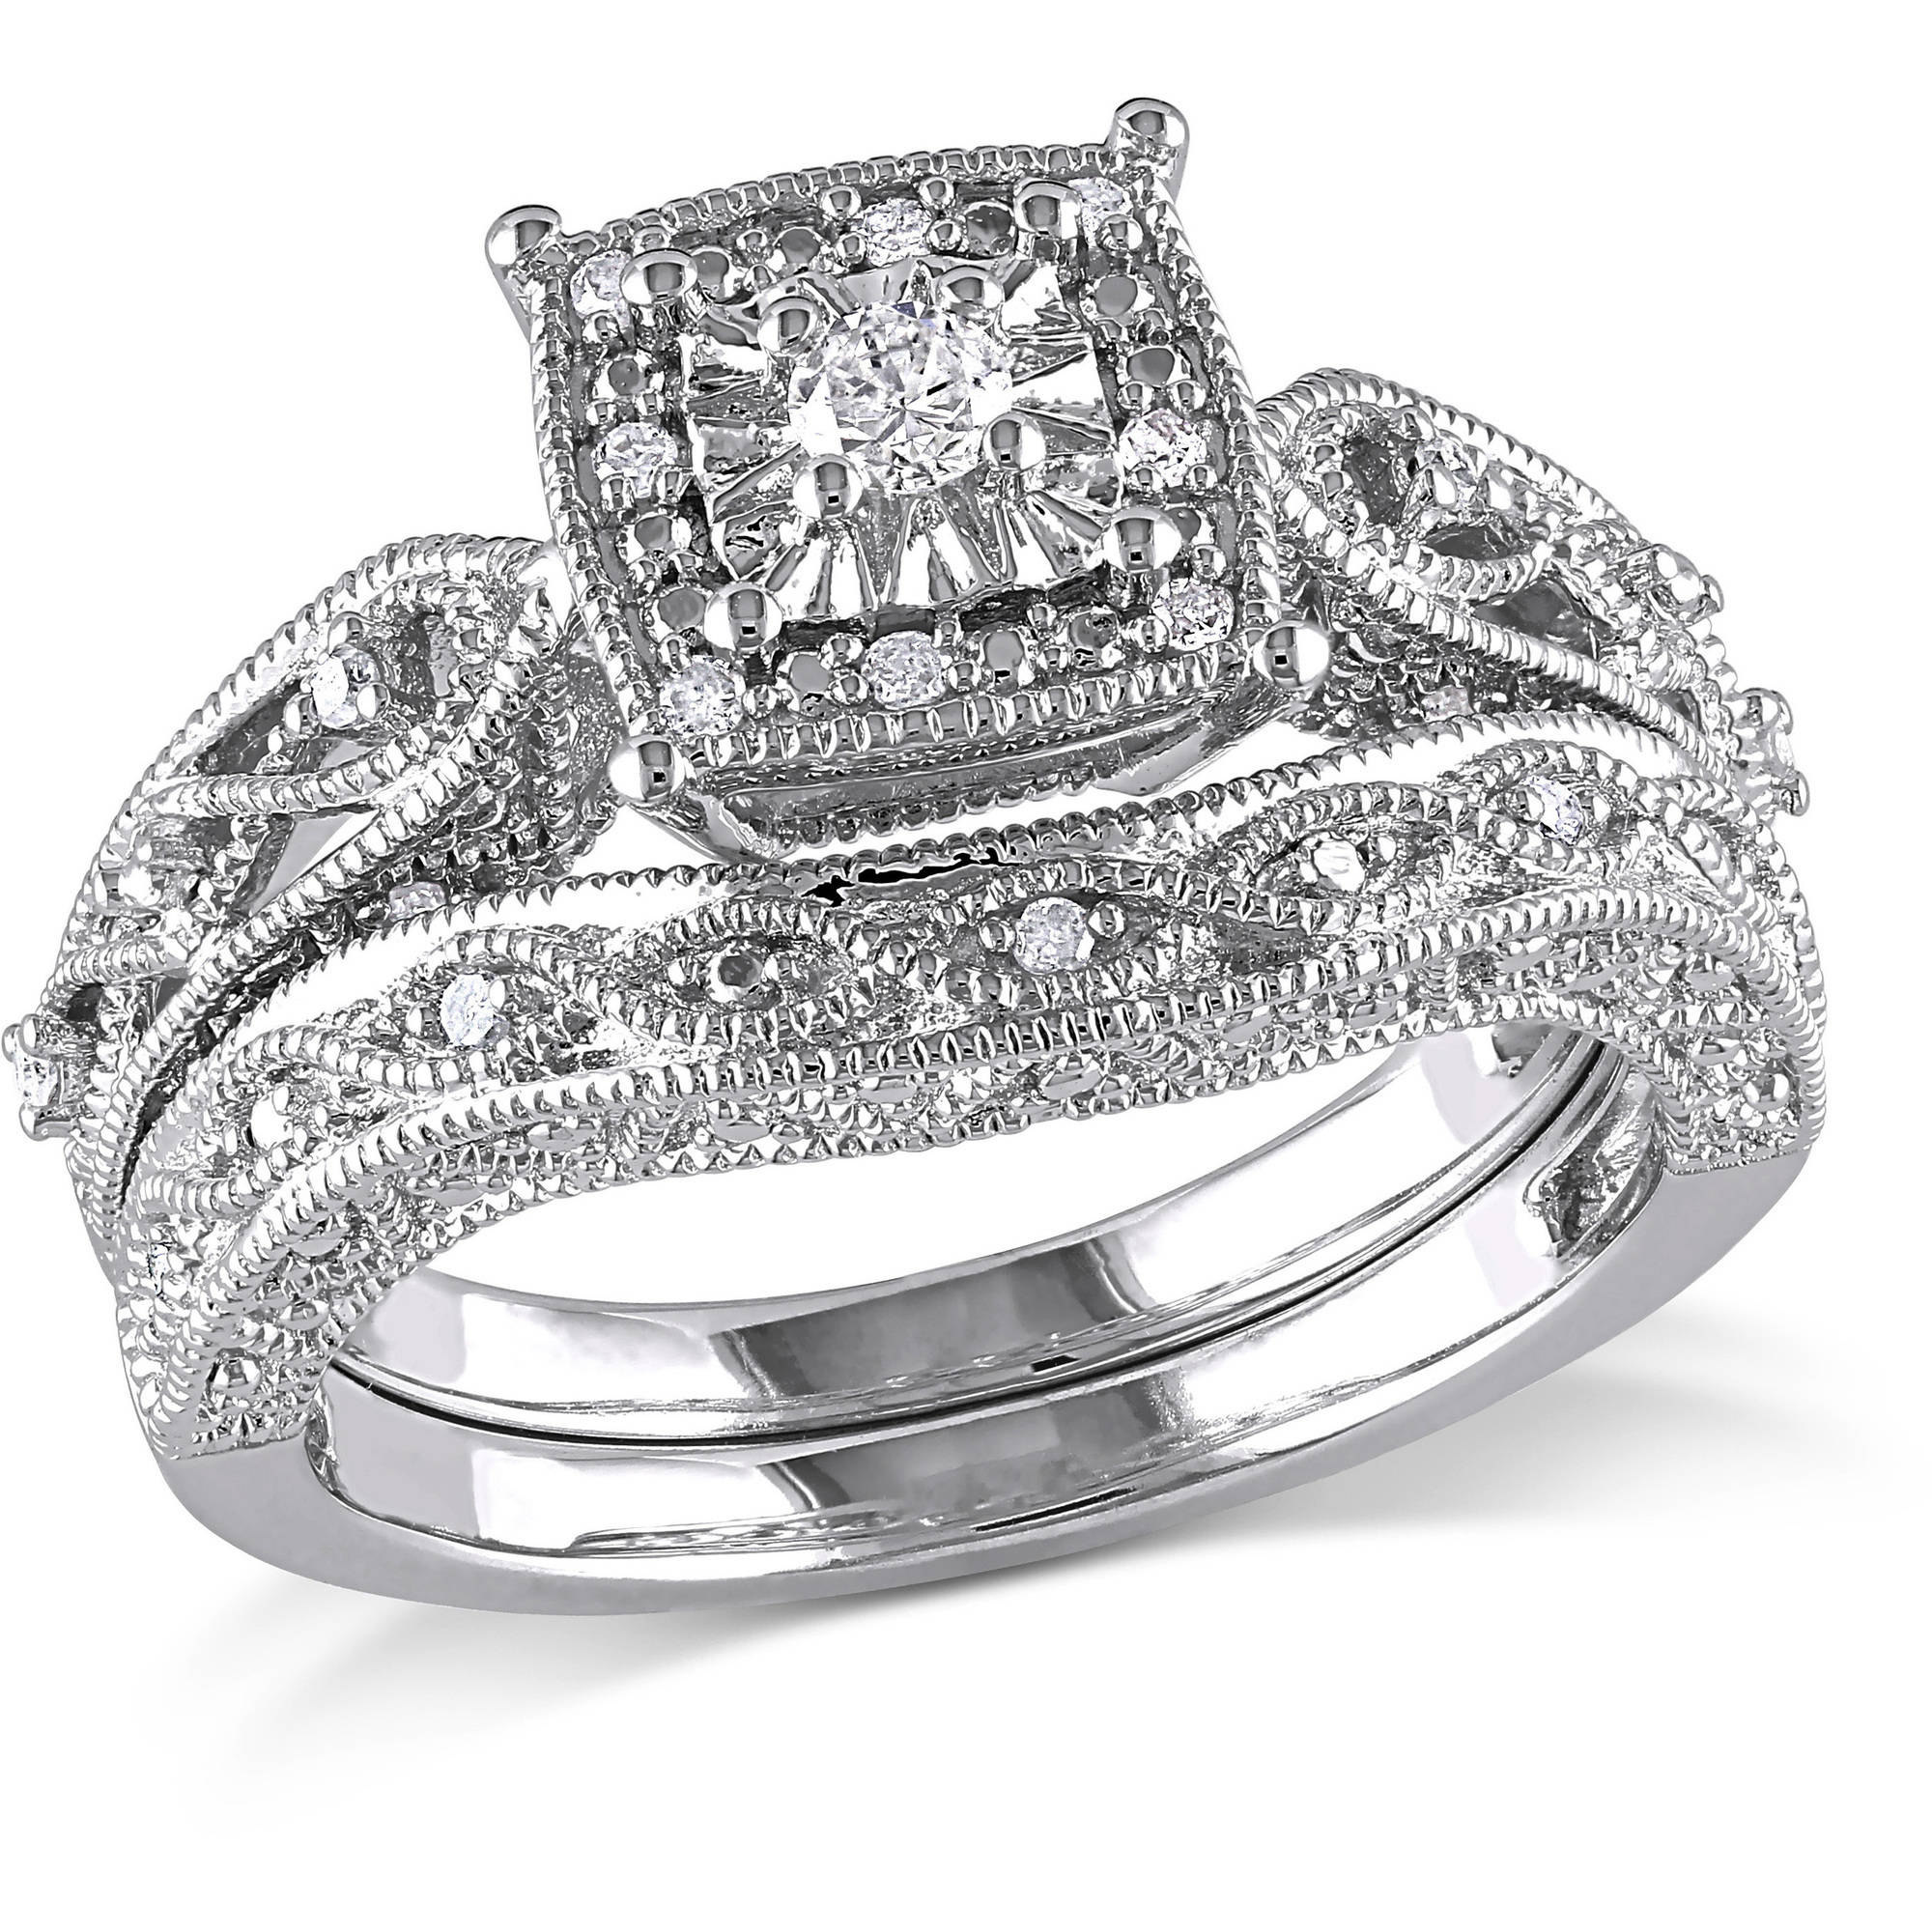 Miabella 1/5 Carat T.W. Diamond Sterling Silver Bridal Set